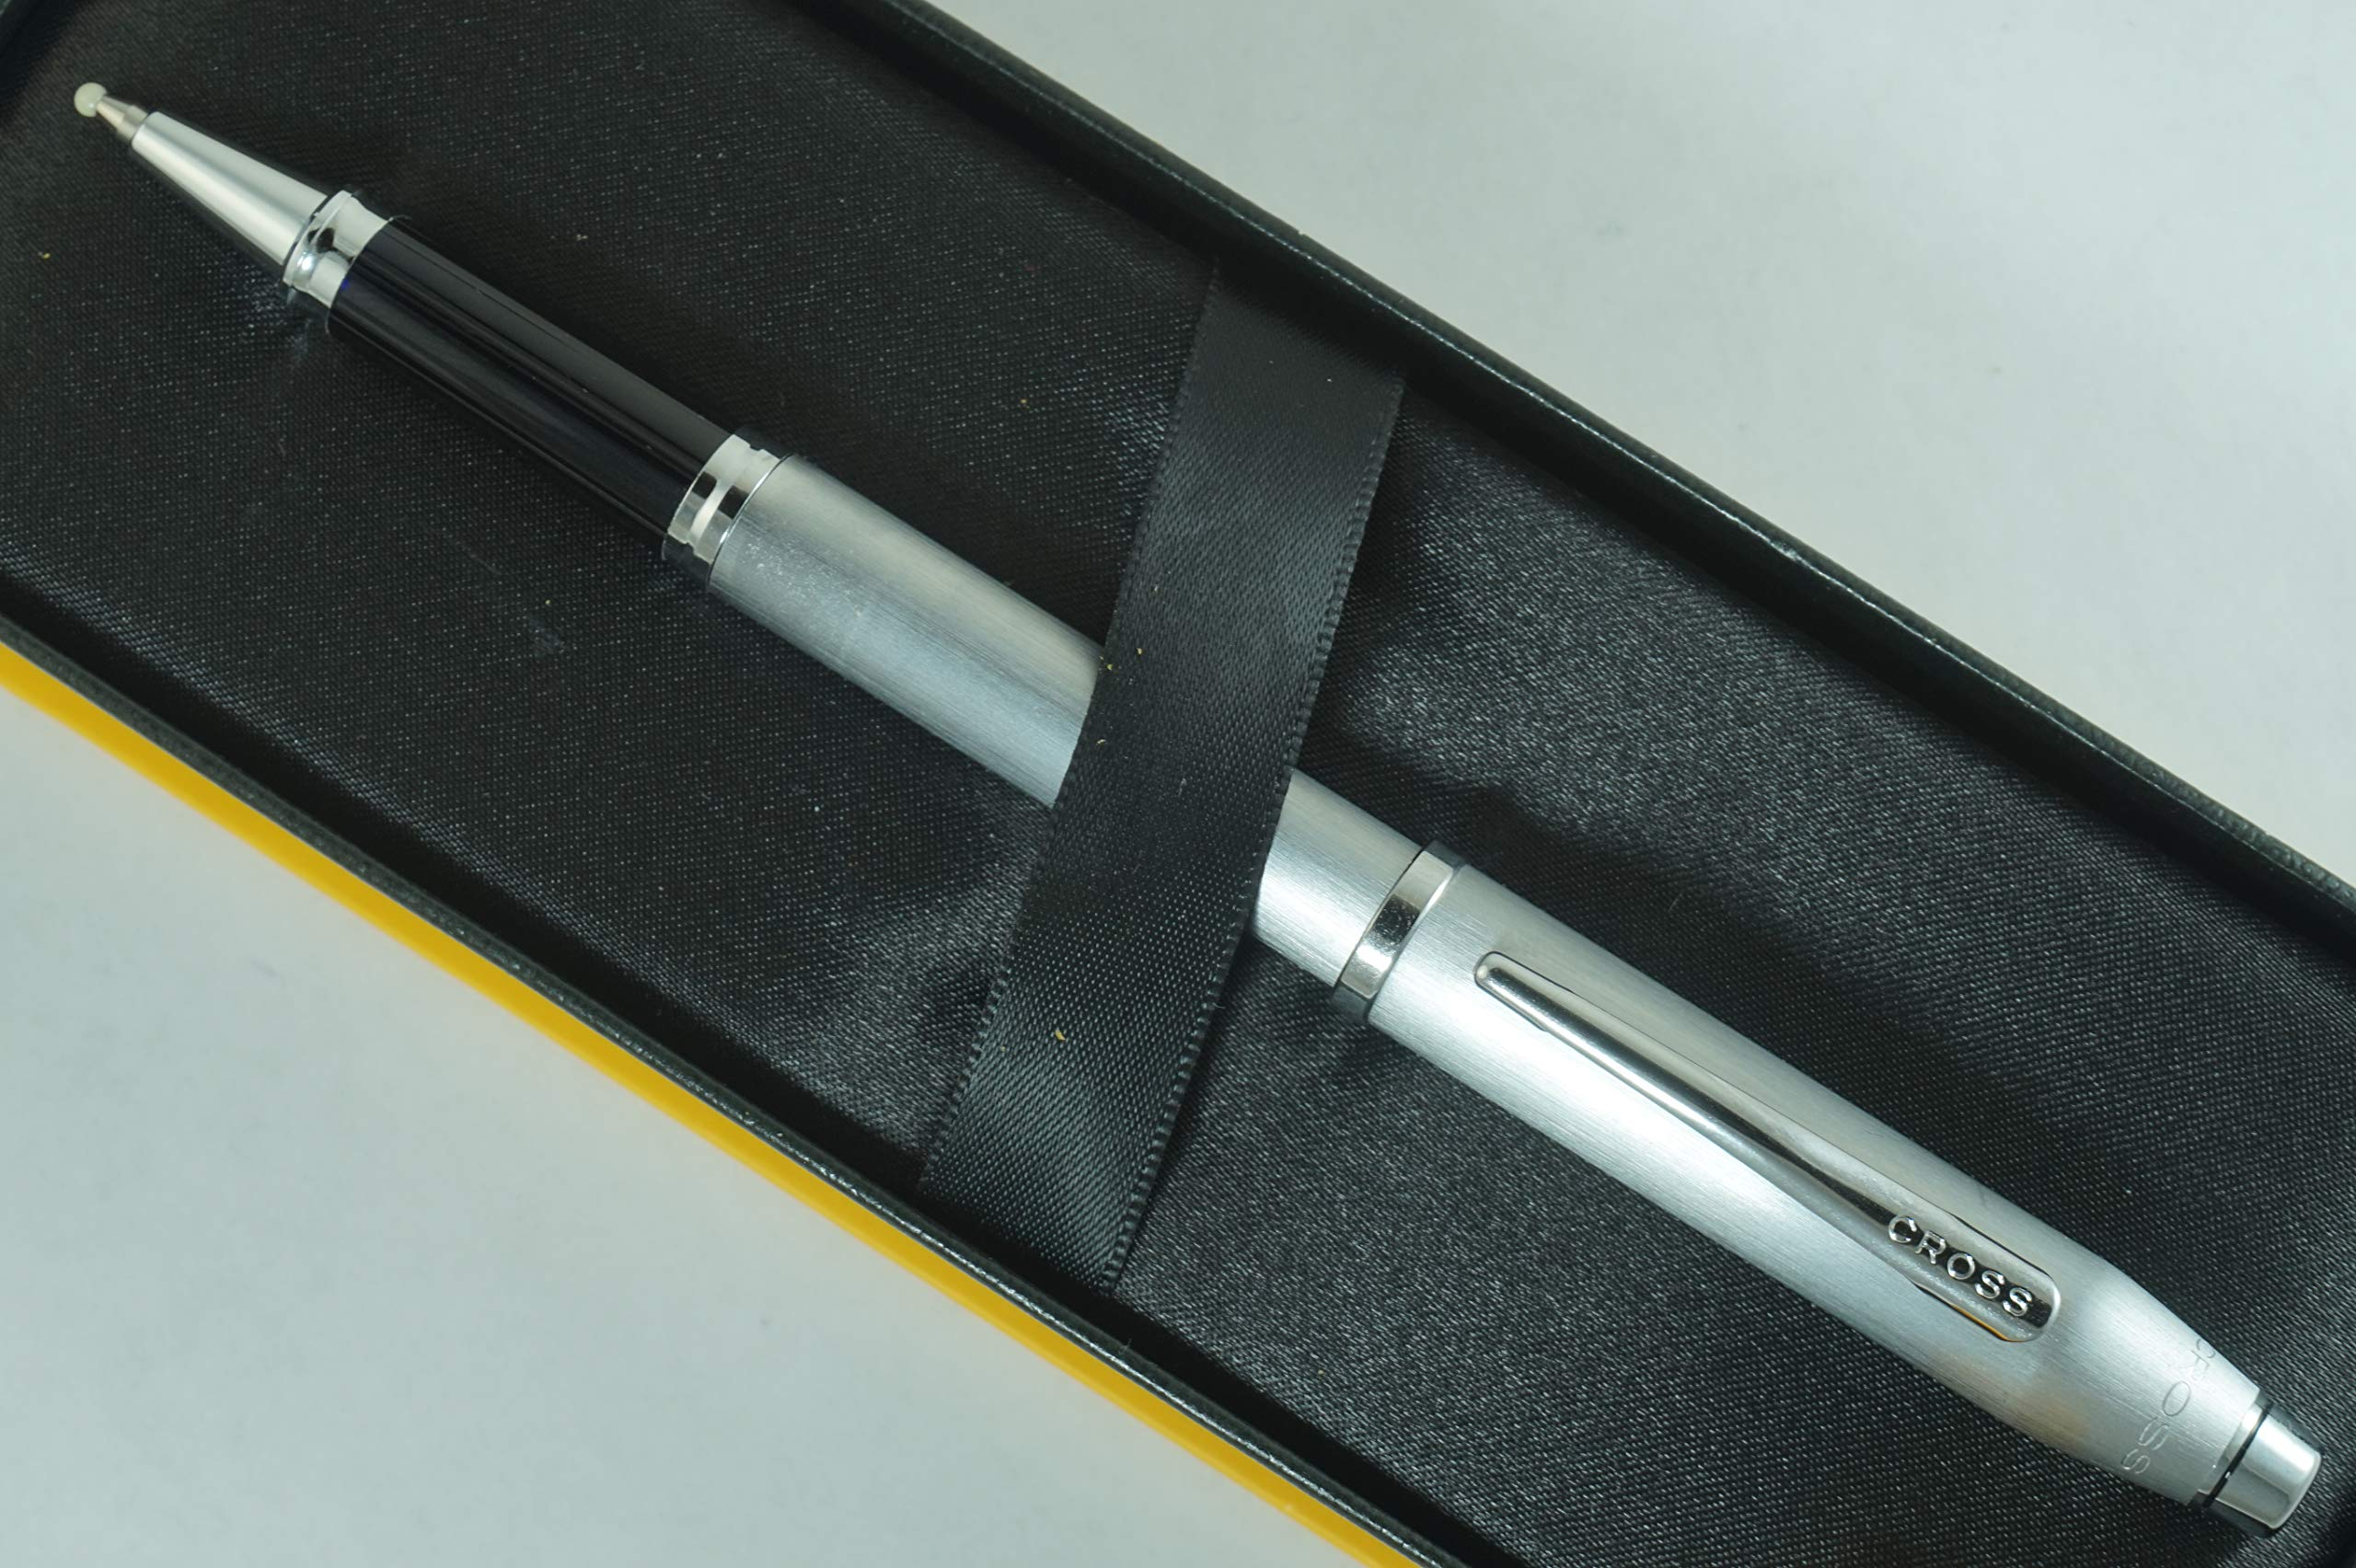 Cross Century II Limited Series, Brushed Barrel selectip Gel Ink Rollerball Pen by A.T. Cross (Image #5)